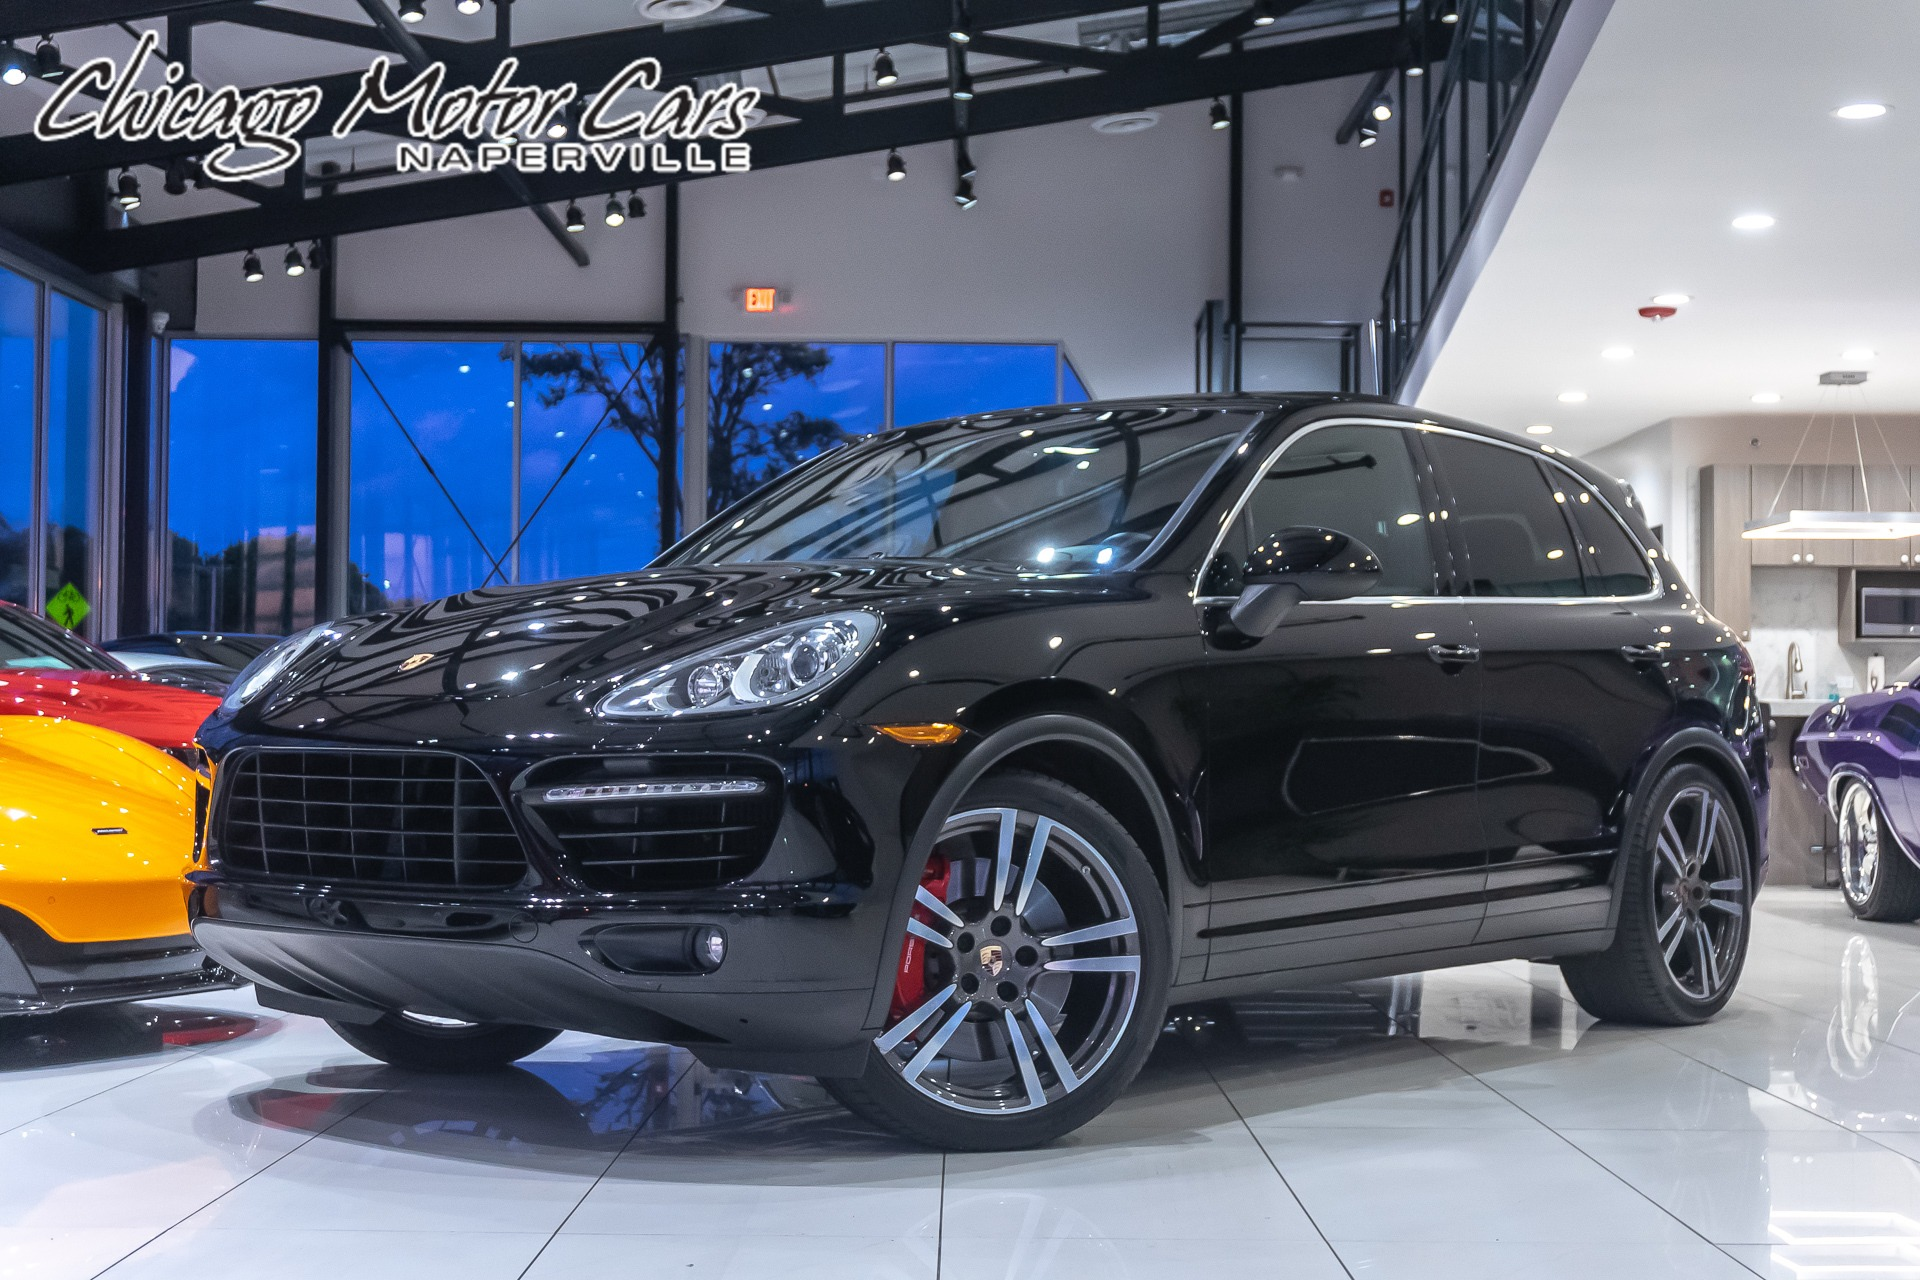 Used 2014 Porsche Cayenne Turbo Suv For Sale Special Pricing Chicago Motor Cars Stock 16297